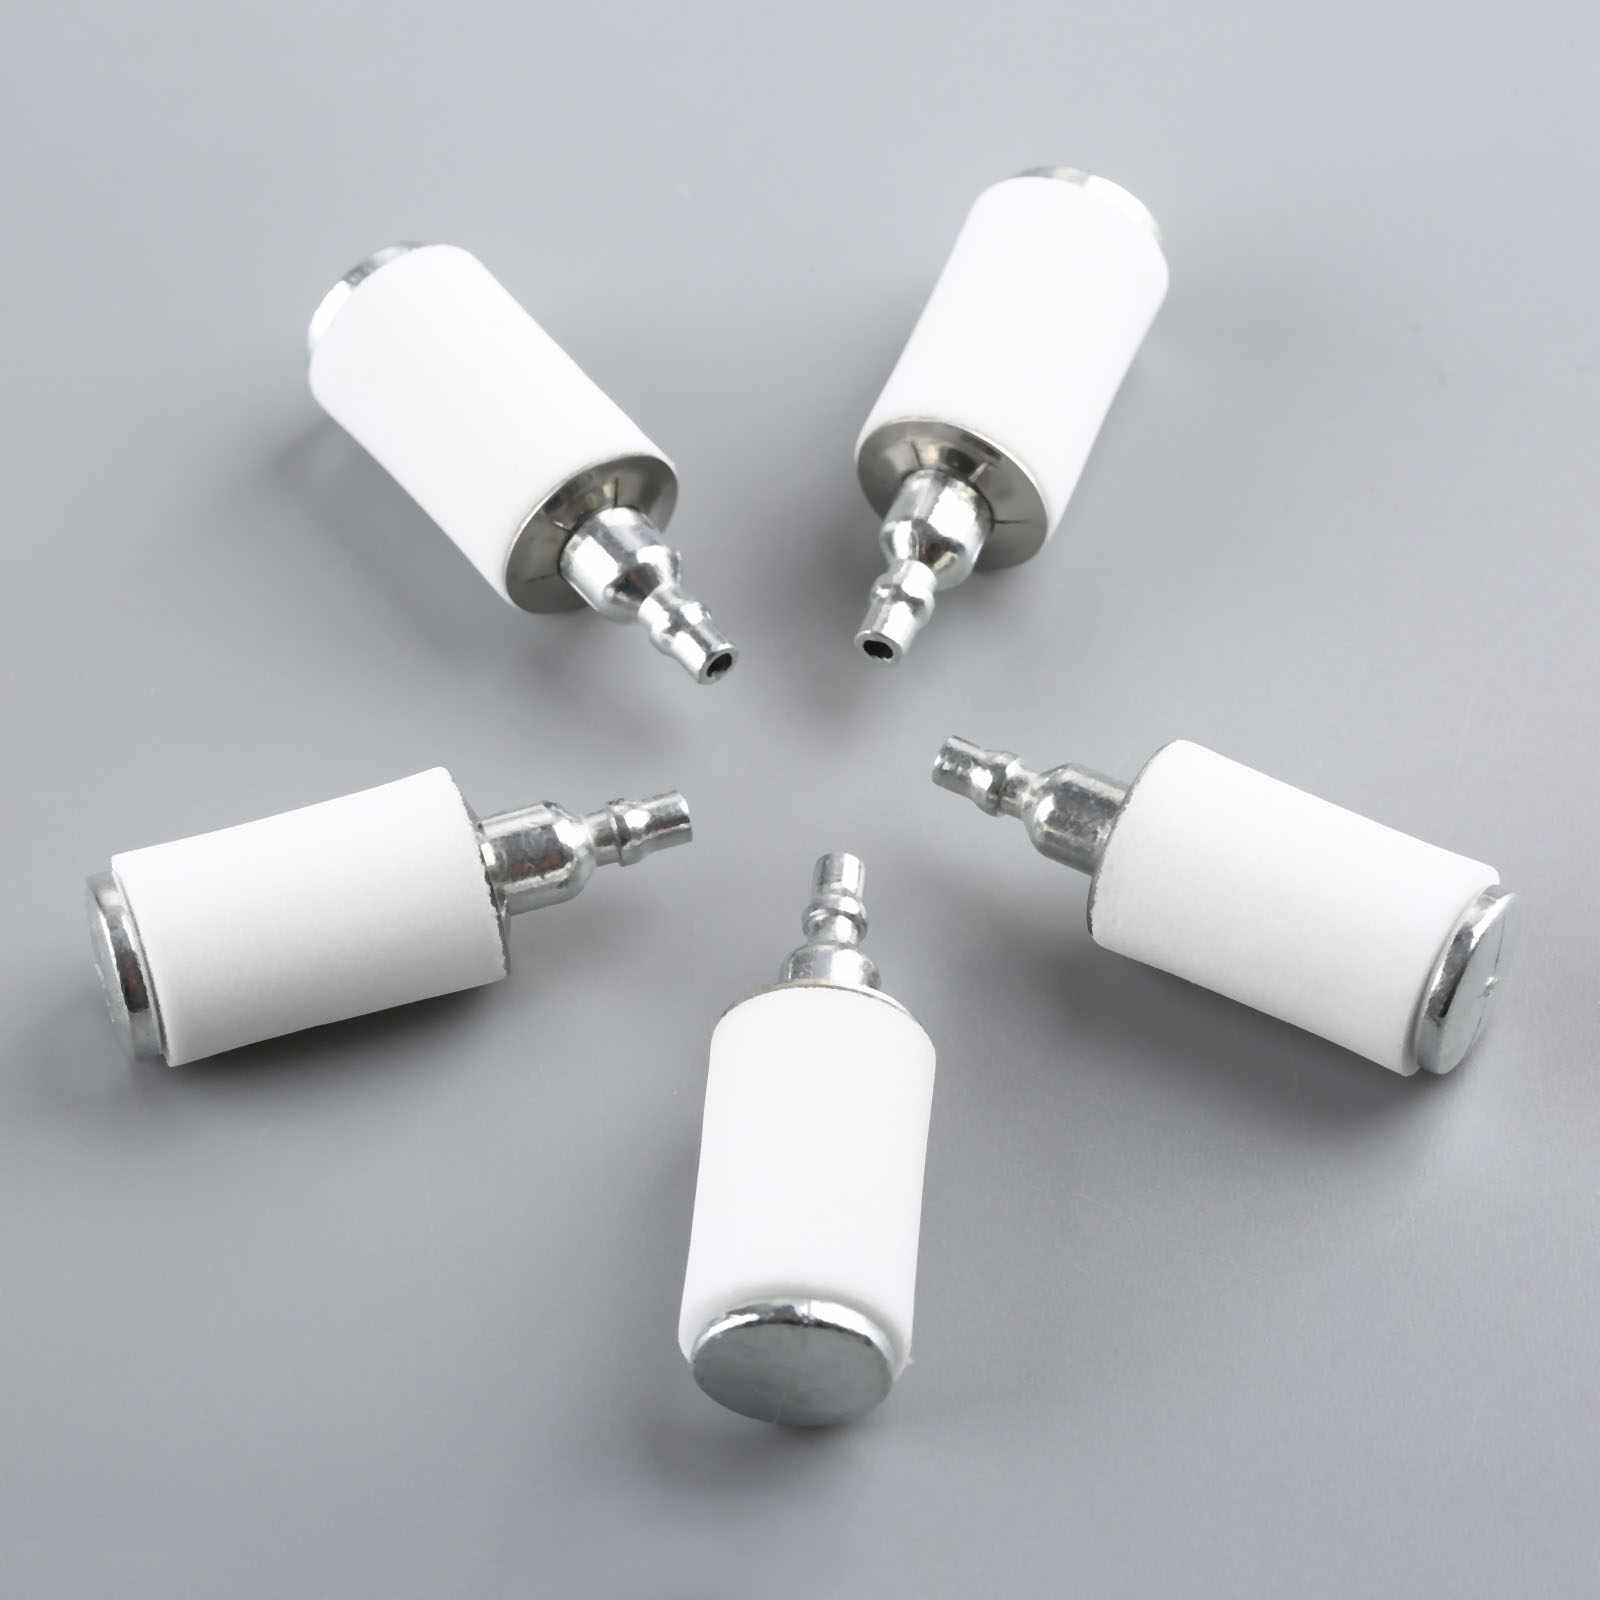 DRELD 5Pcs Gas Fuel Filter For Weedeater Poulan 2250le P1500 P3500 on